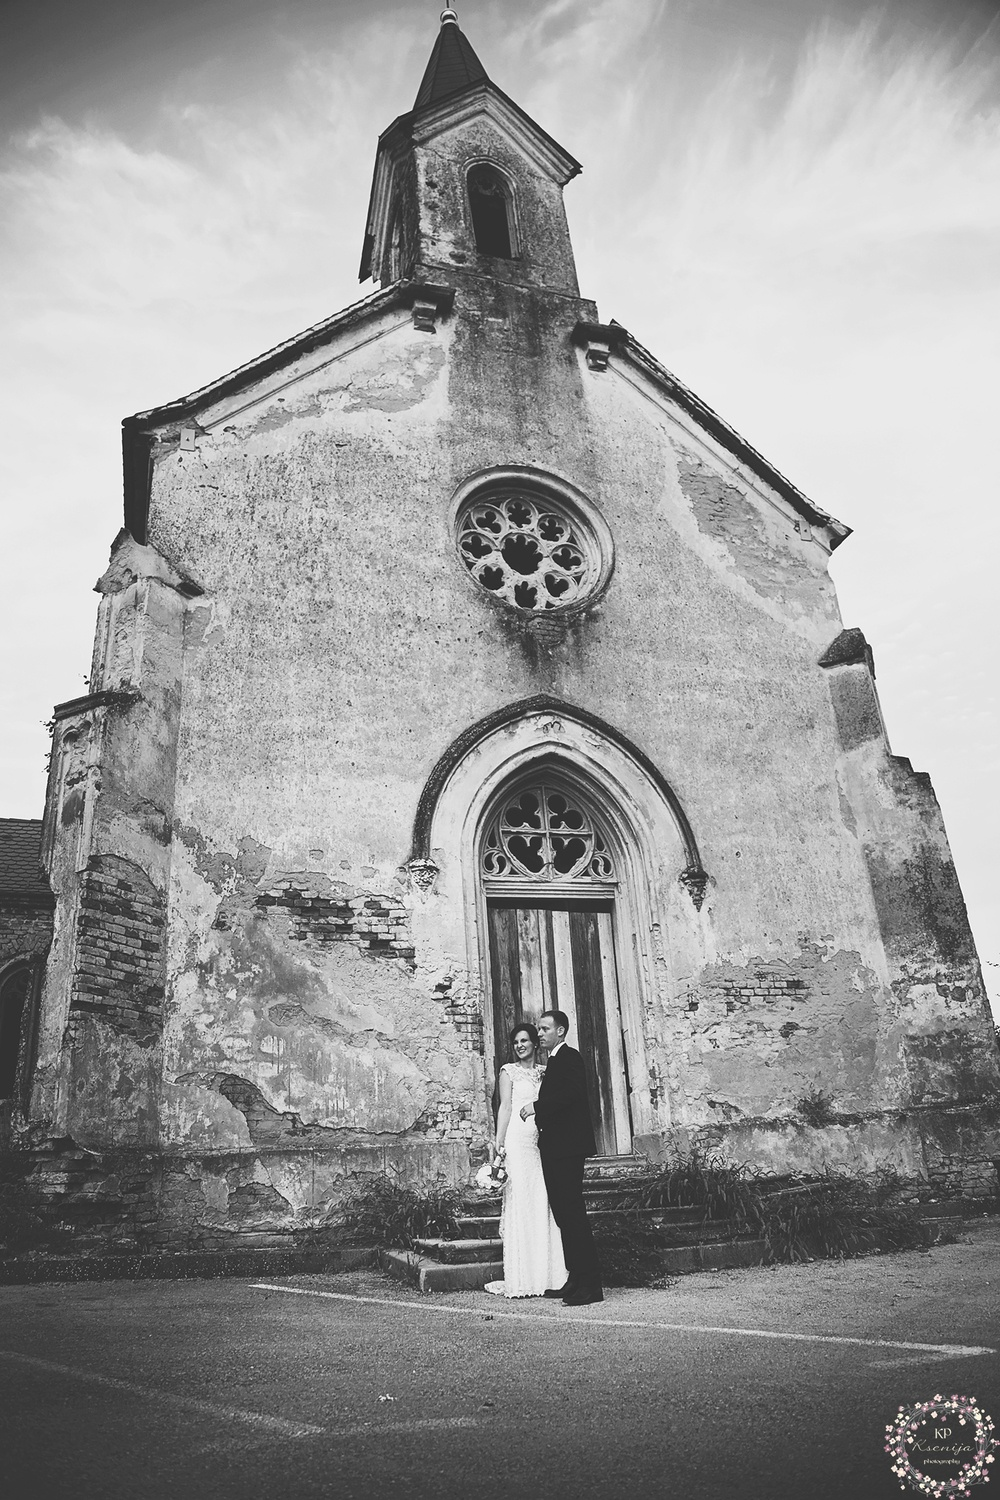 The old church by ksenijapucakphotography